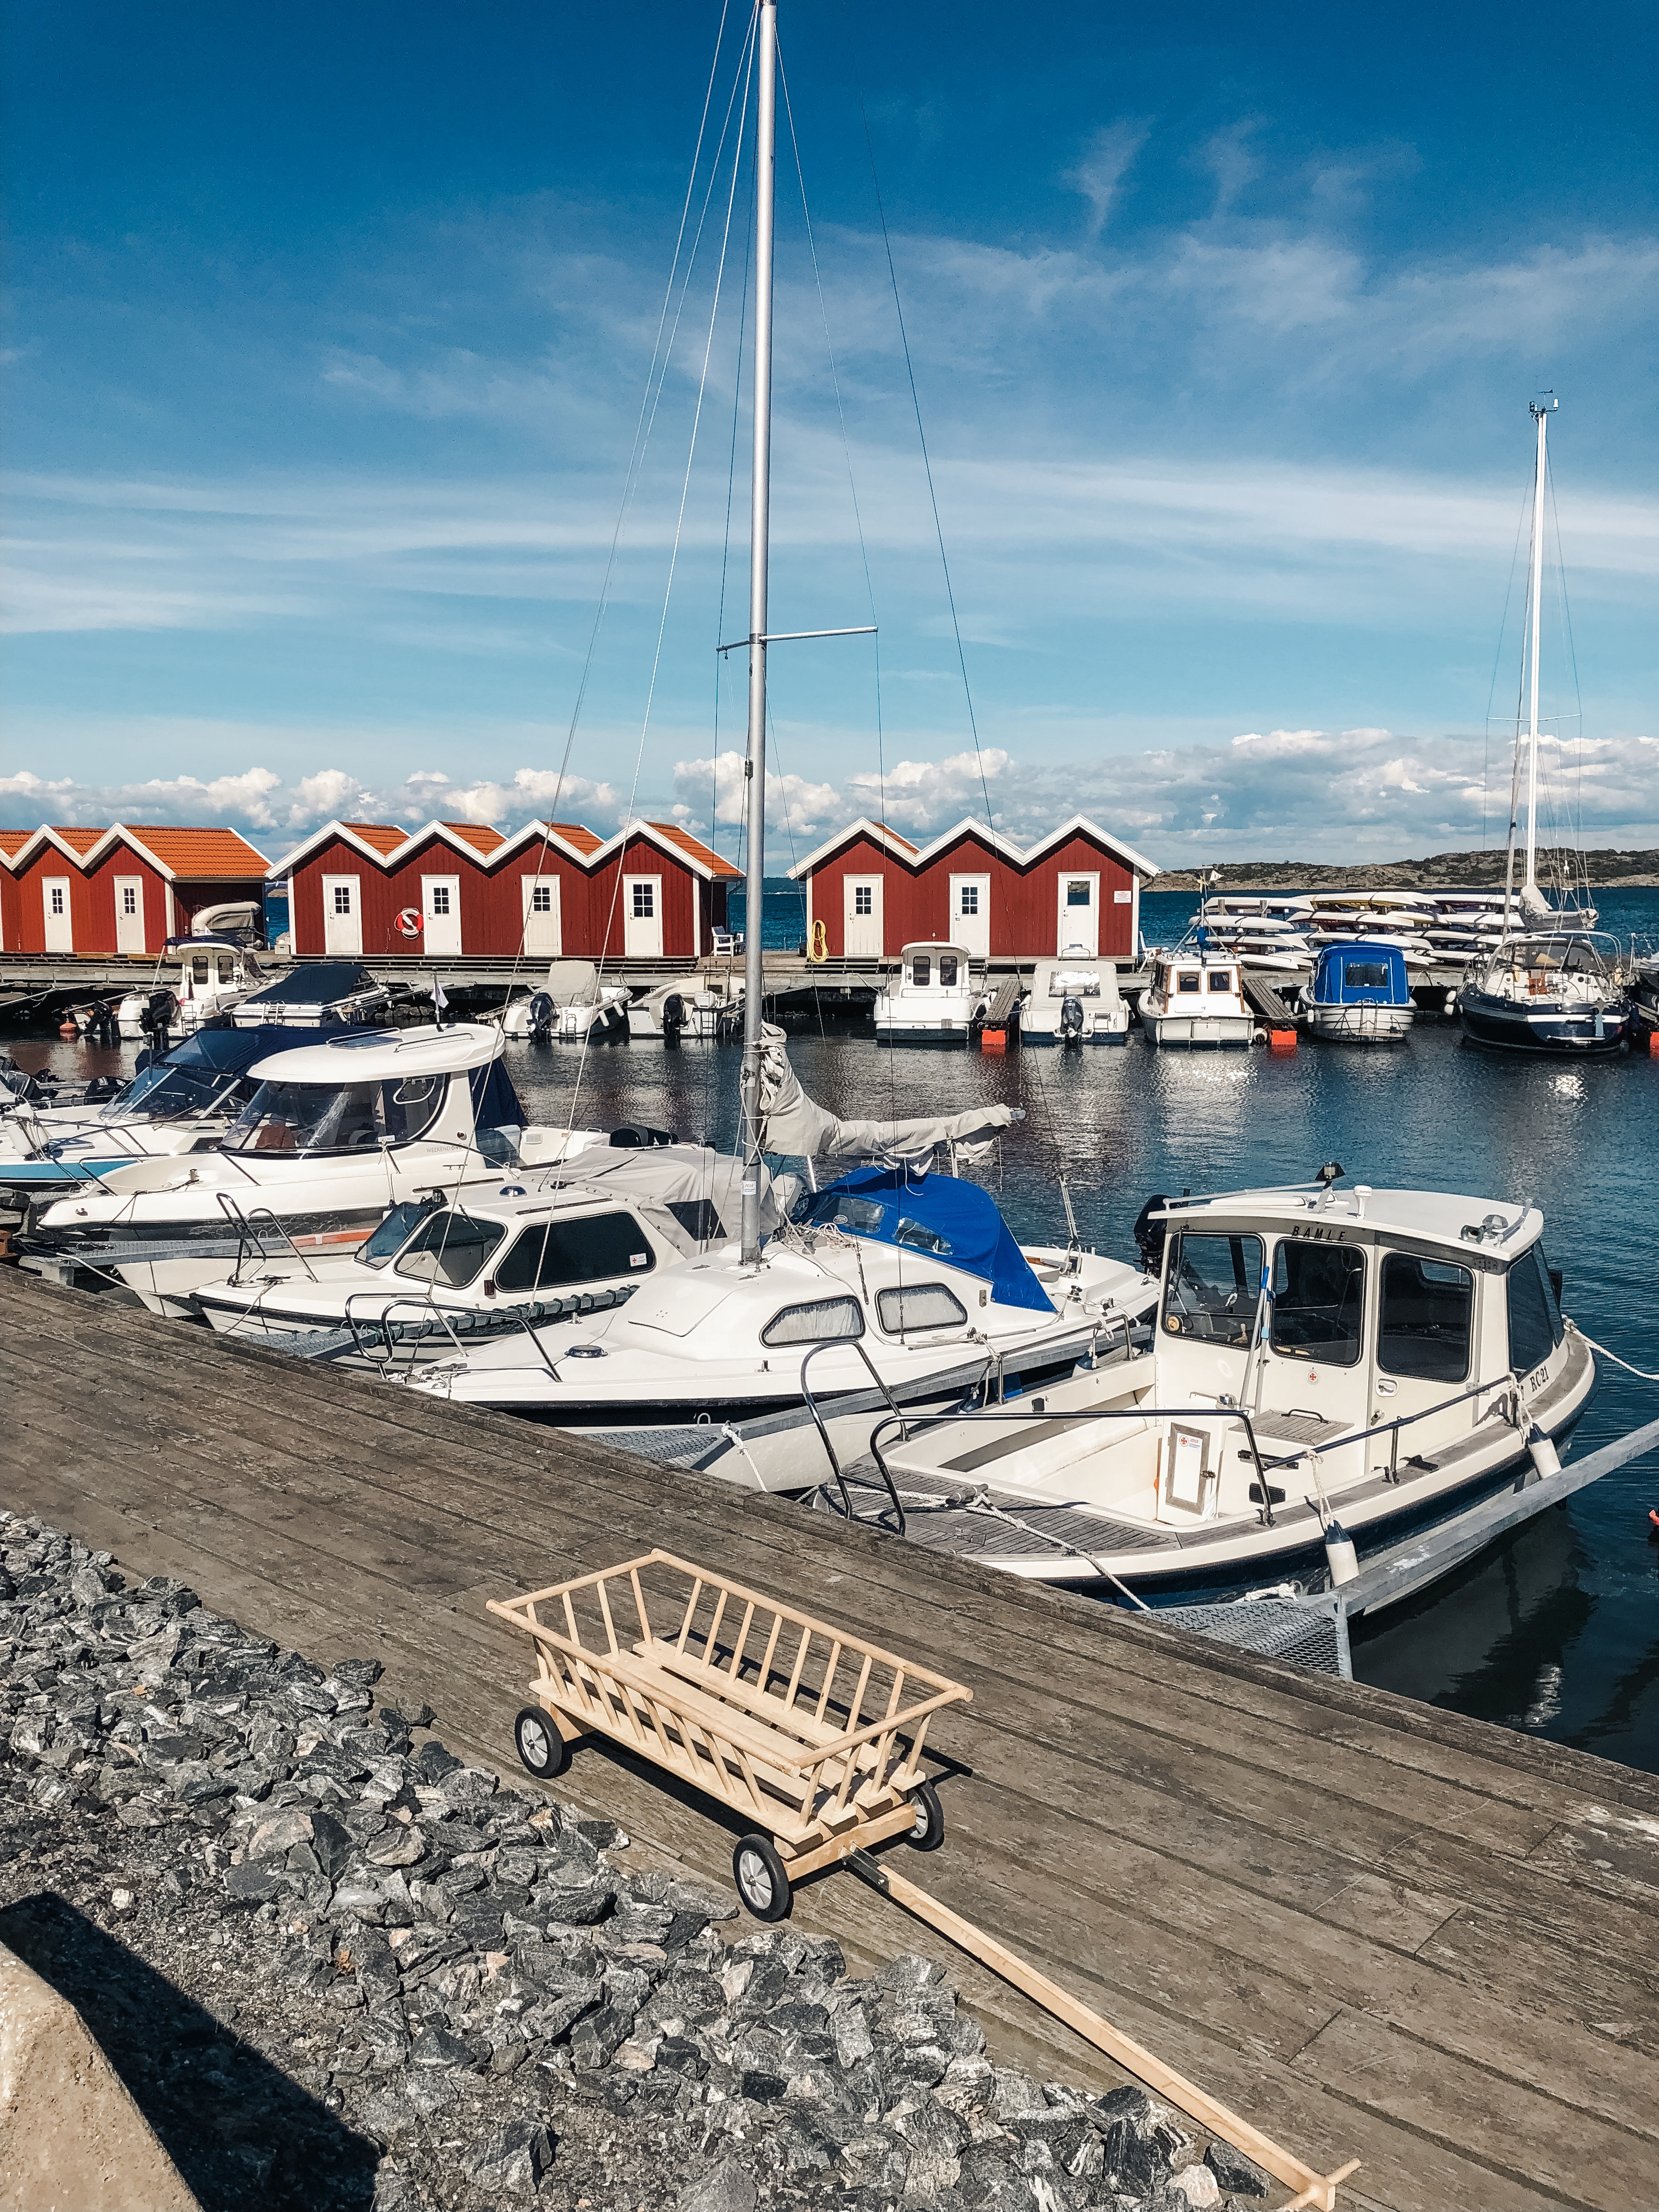 Things to do in Bohuslän, West Sweden